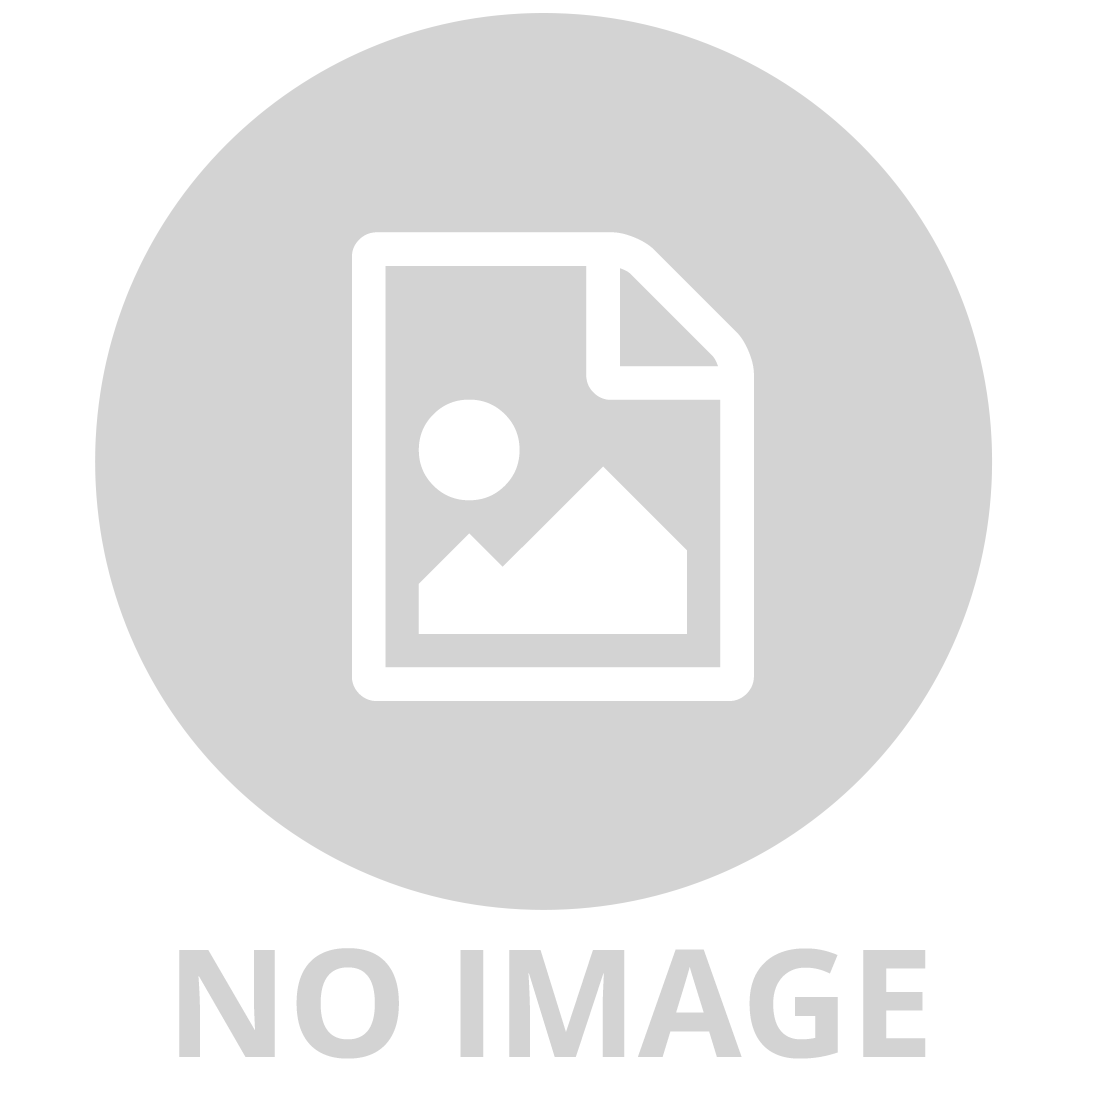 2 IN 1 WOODEN TRAIN TABLE SET 70 PIECES